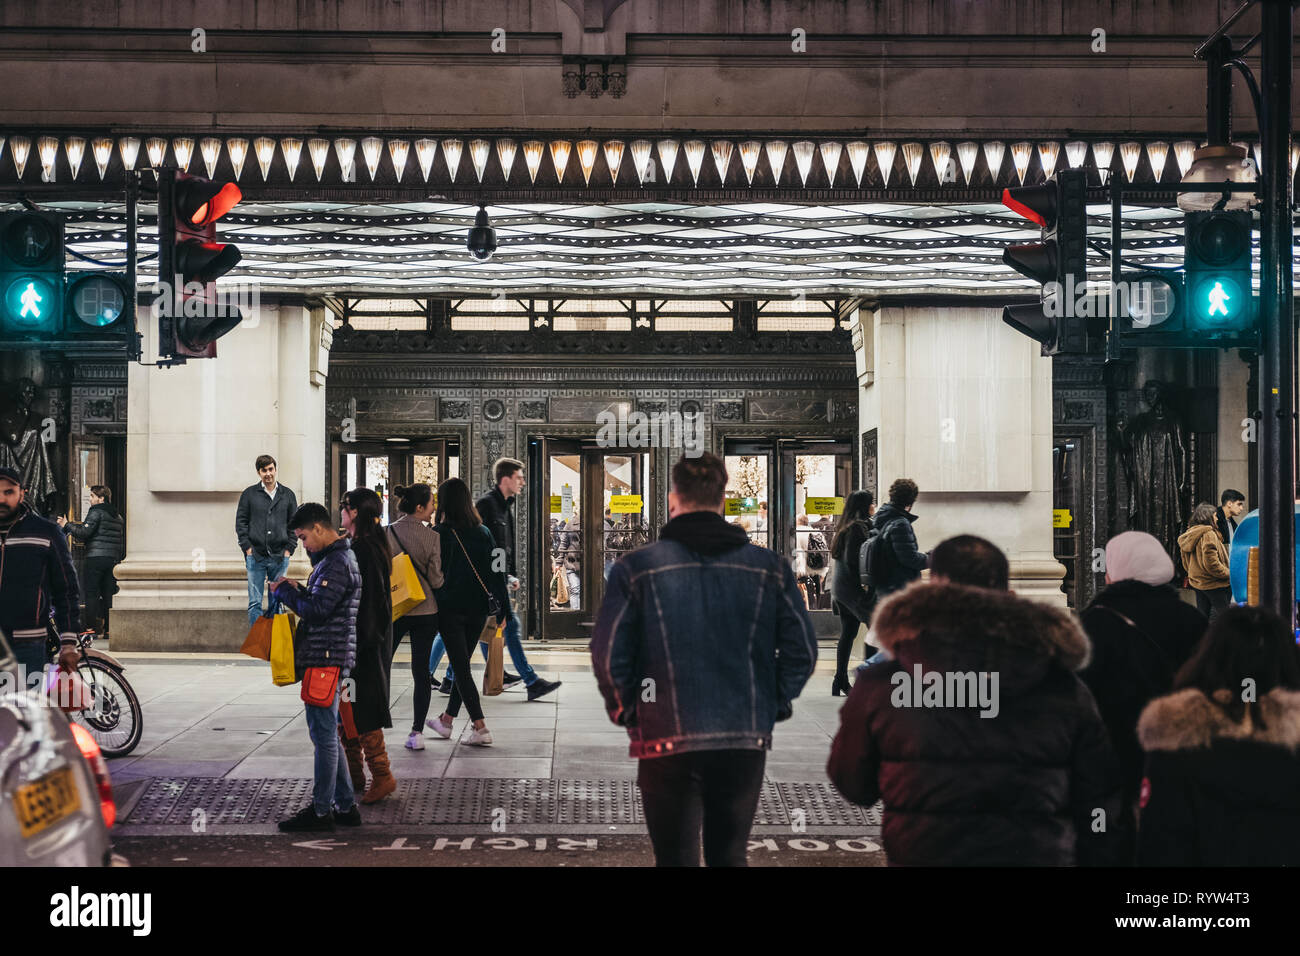 792f1ef11d427 Mall Entrance Stock Photos   Mall Entrance Stock Images - Page 4 - Alamy